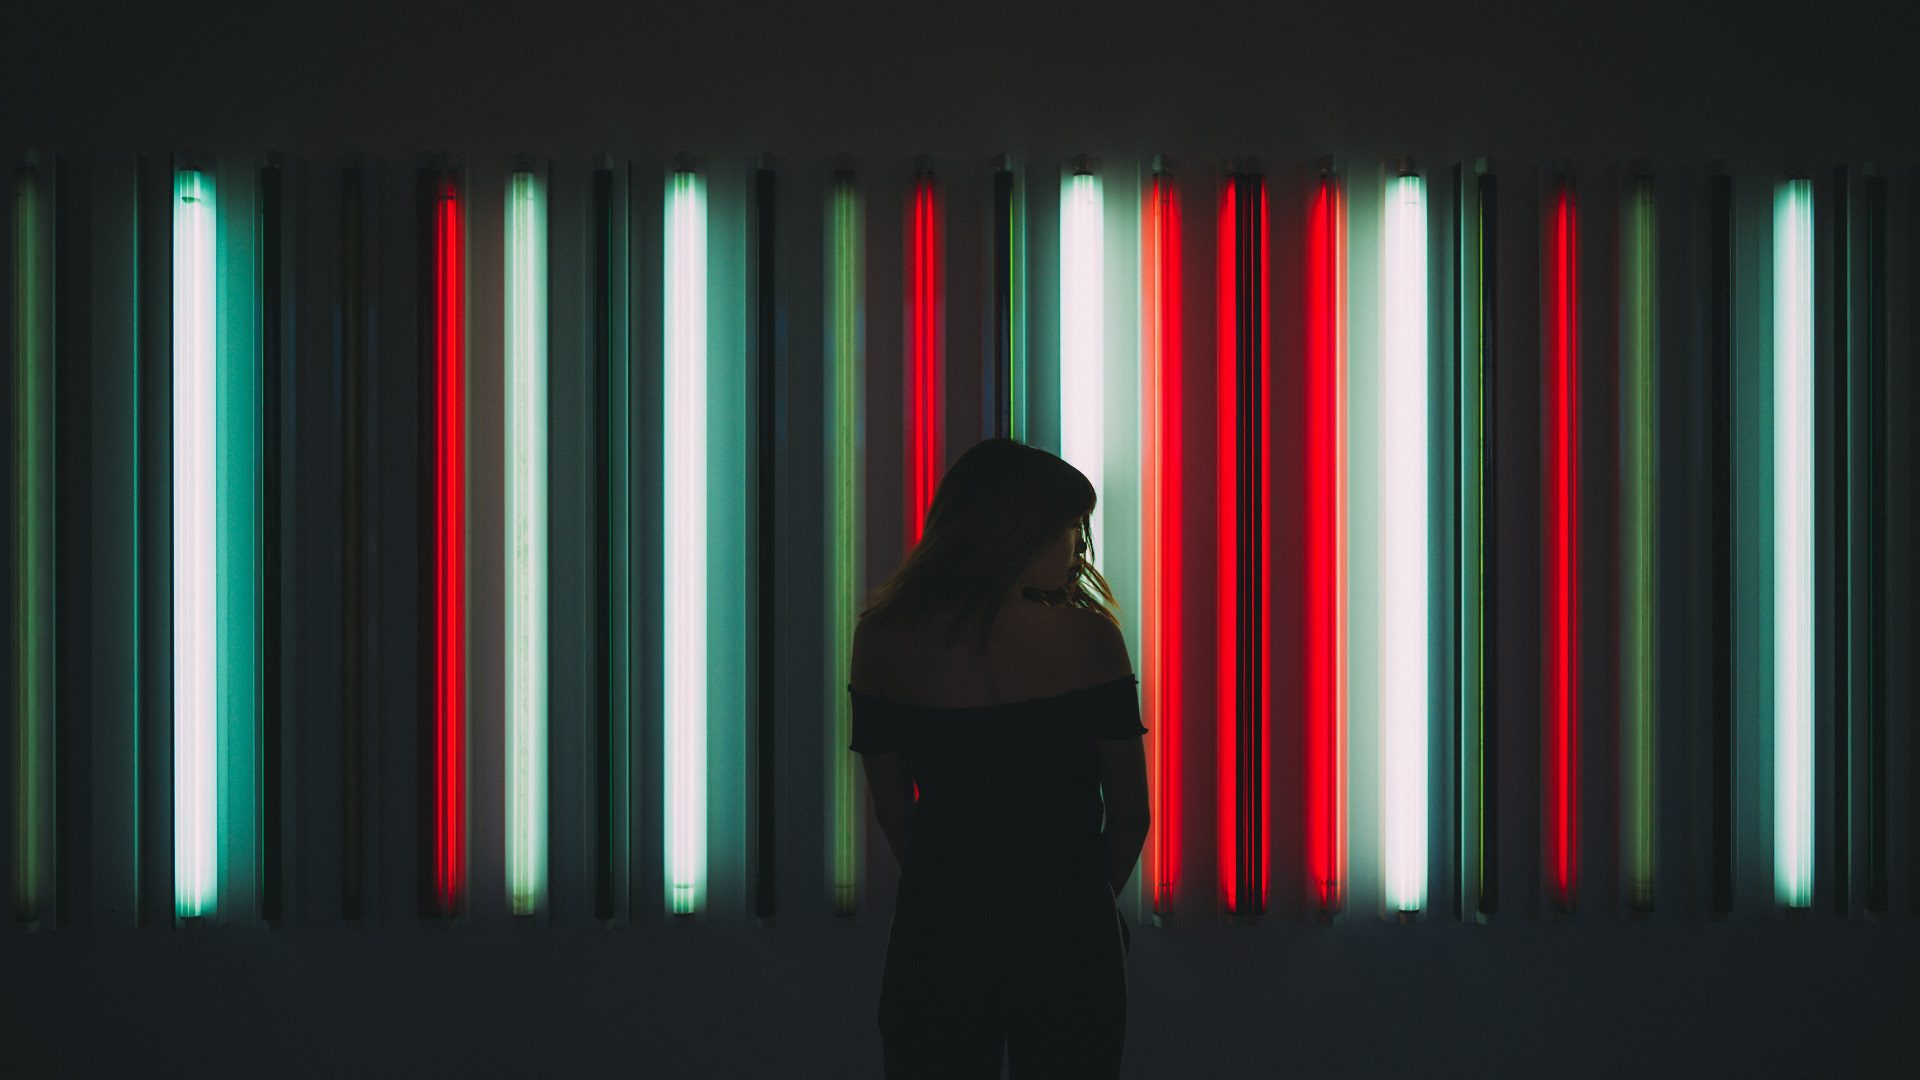 Abstract street photography of girl silhouette in front of red, white, and green striped lighting installation